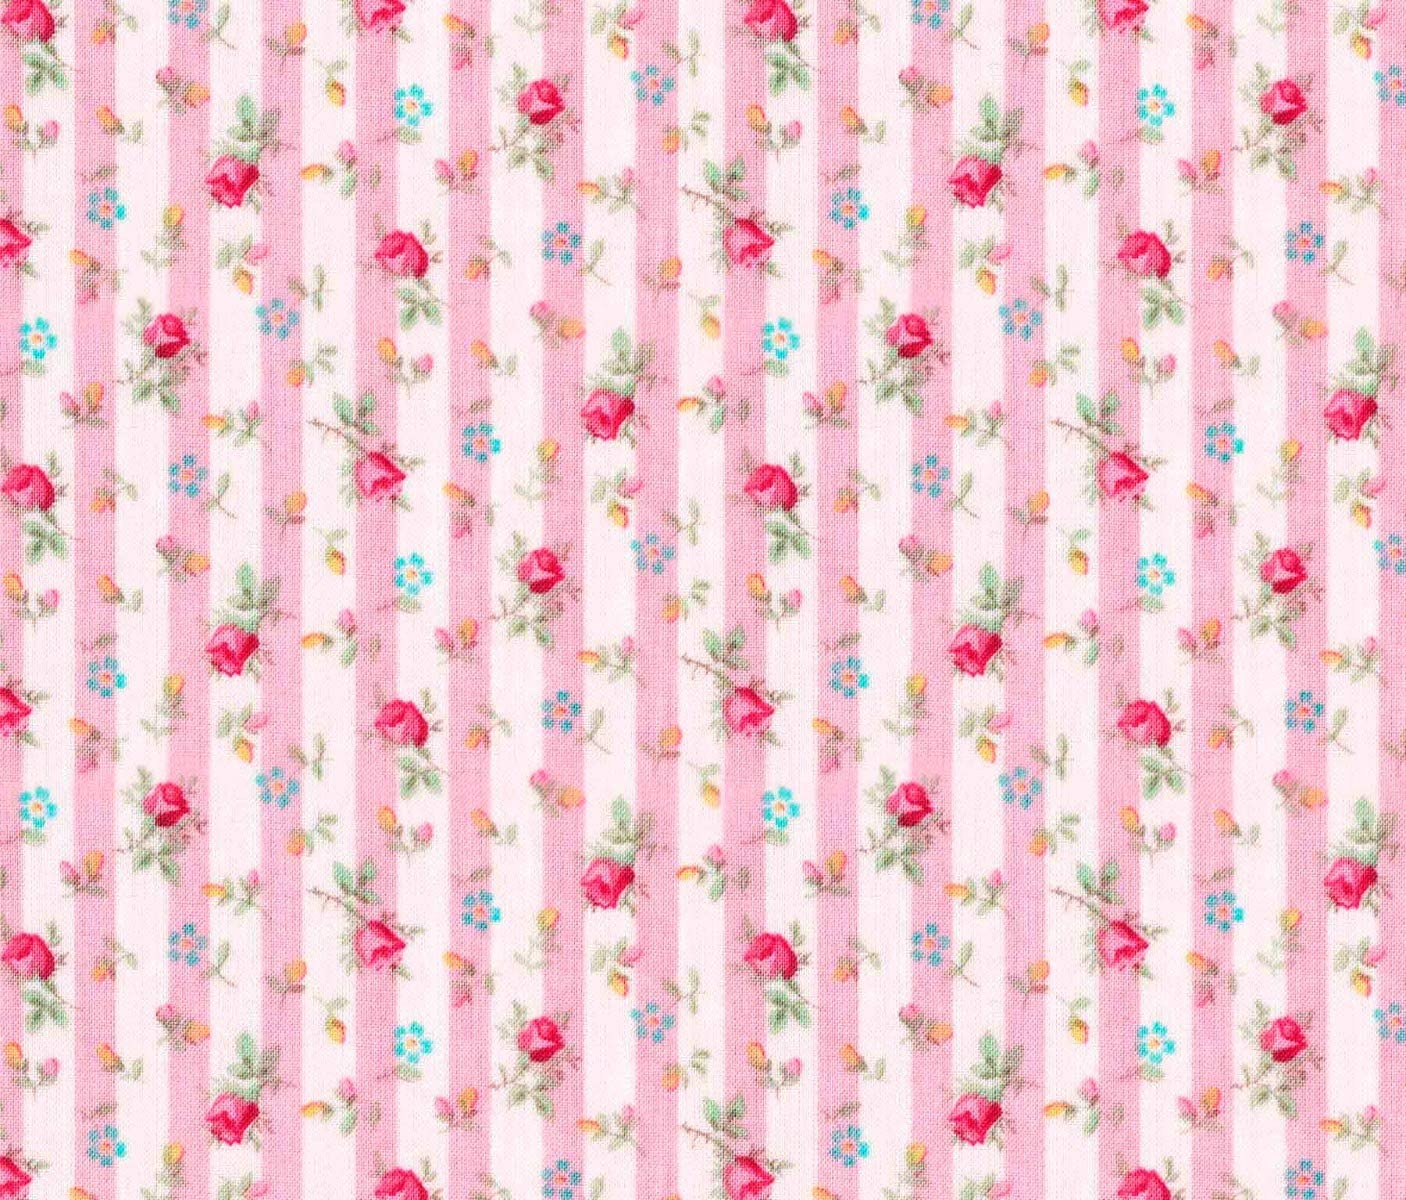 Bohemia Posies Teal  100/% cotton Fabric by the yard 36x43 Floral Fabric C52